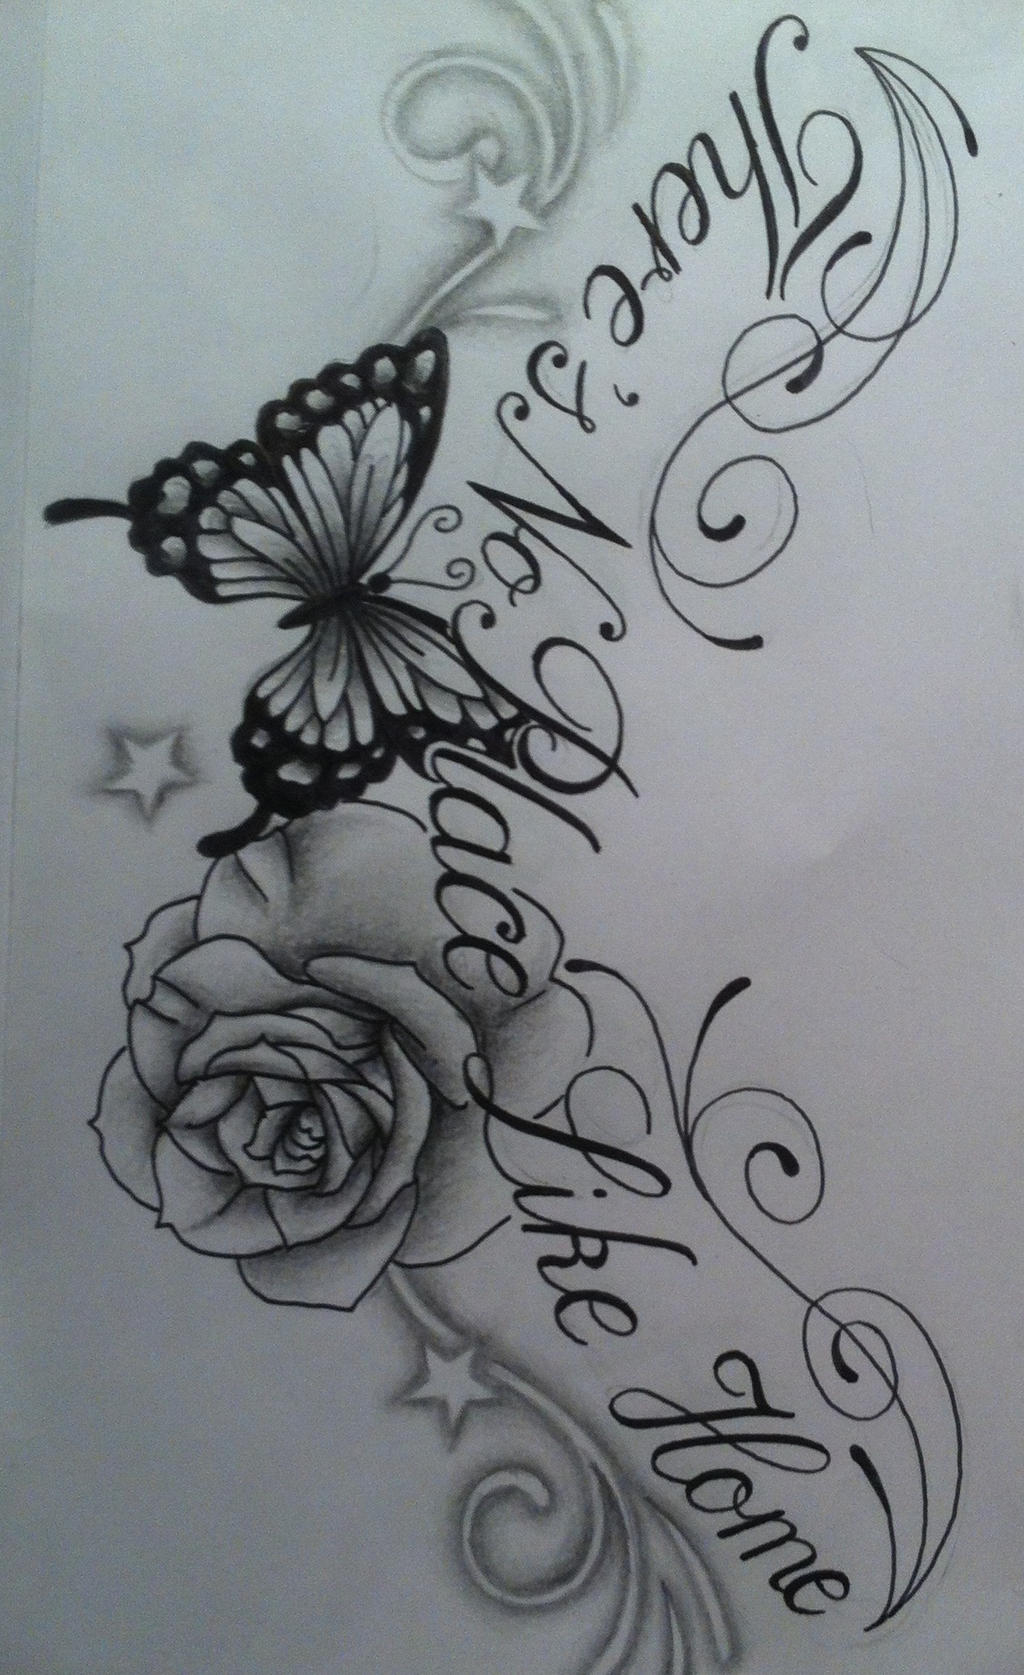 Butterfly and rose drawing - photo#26